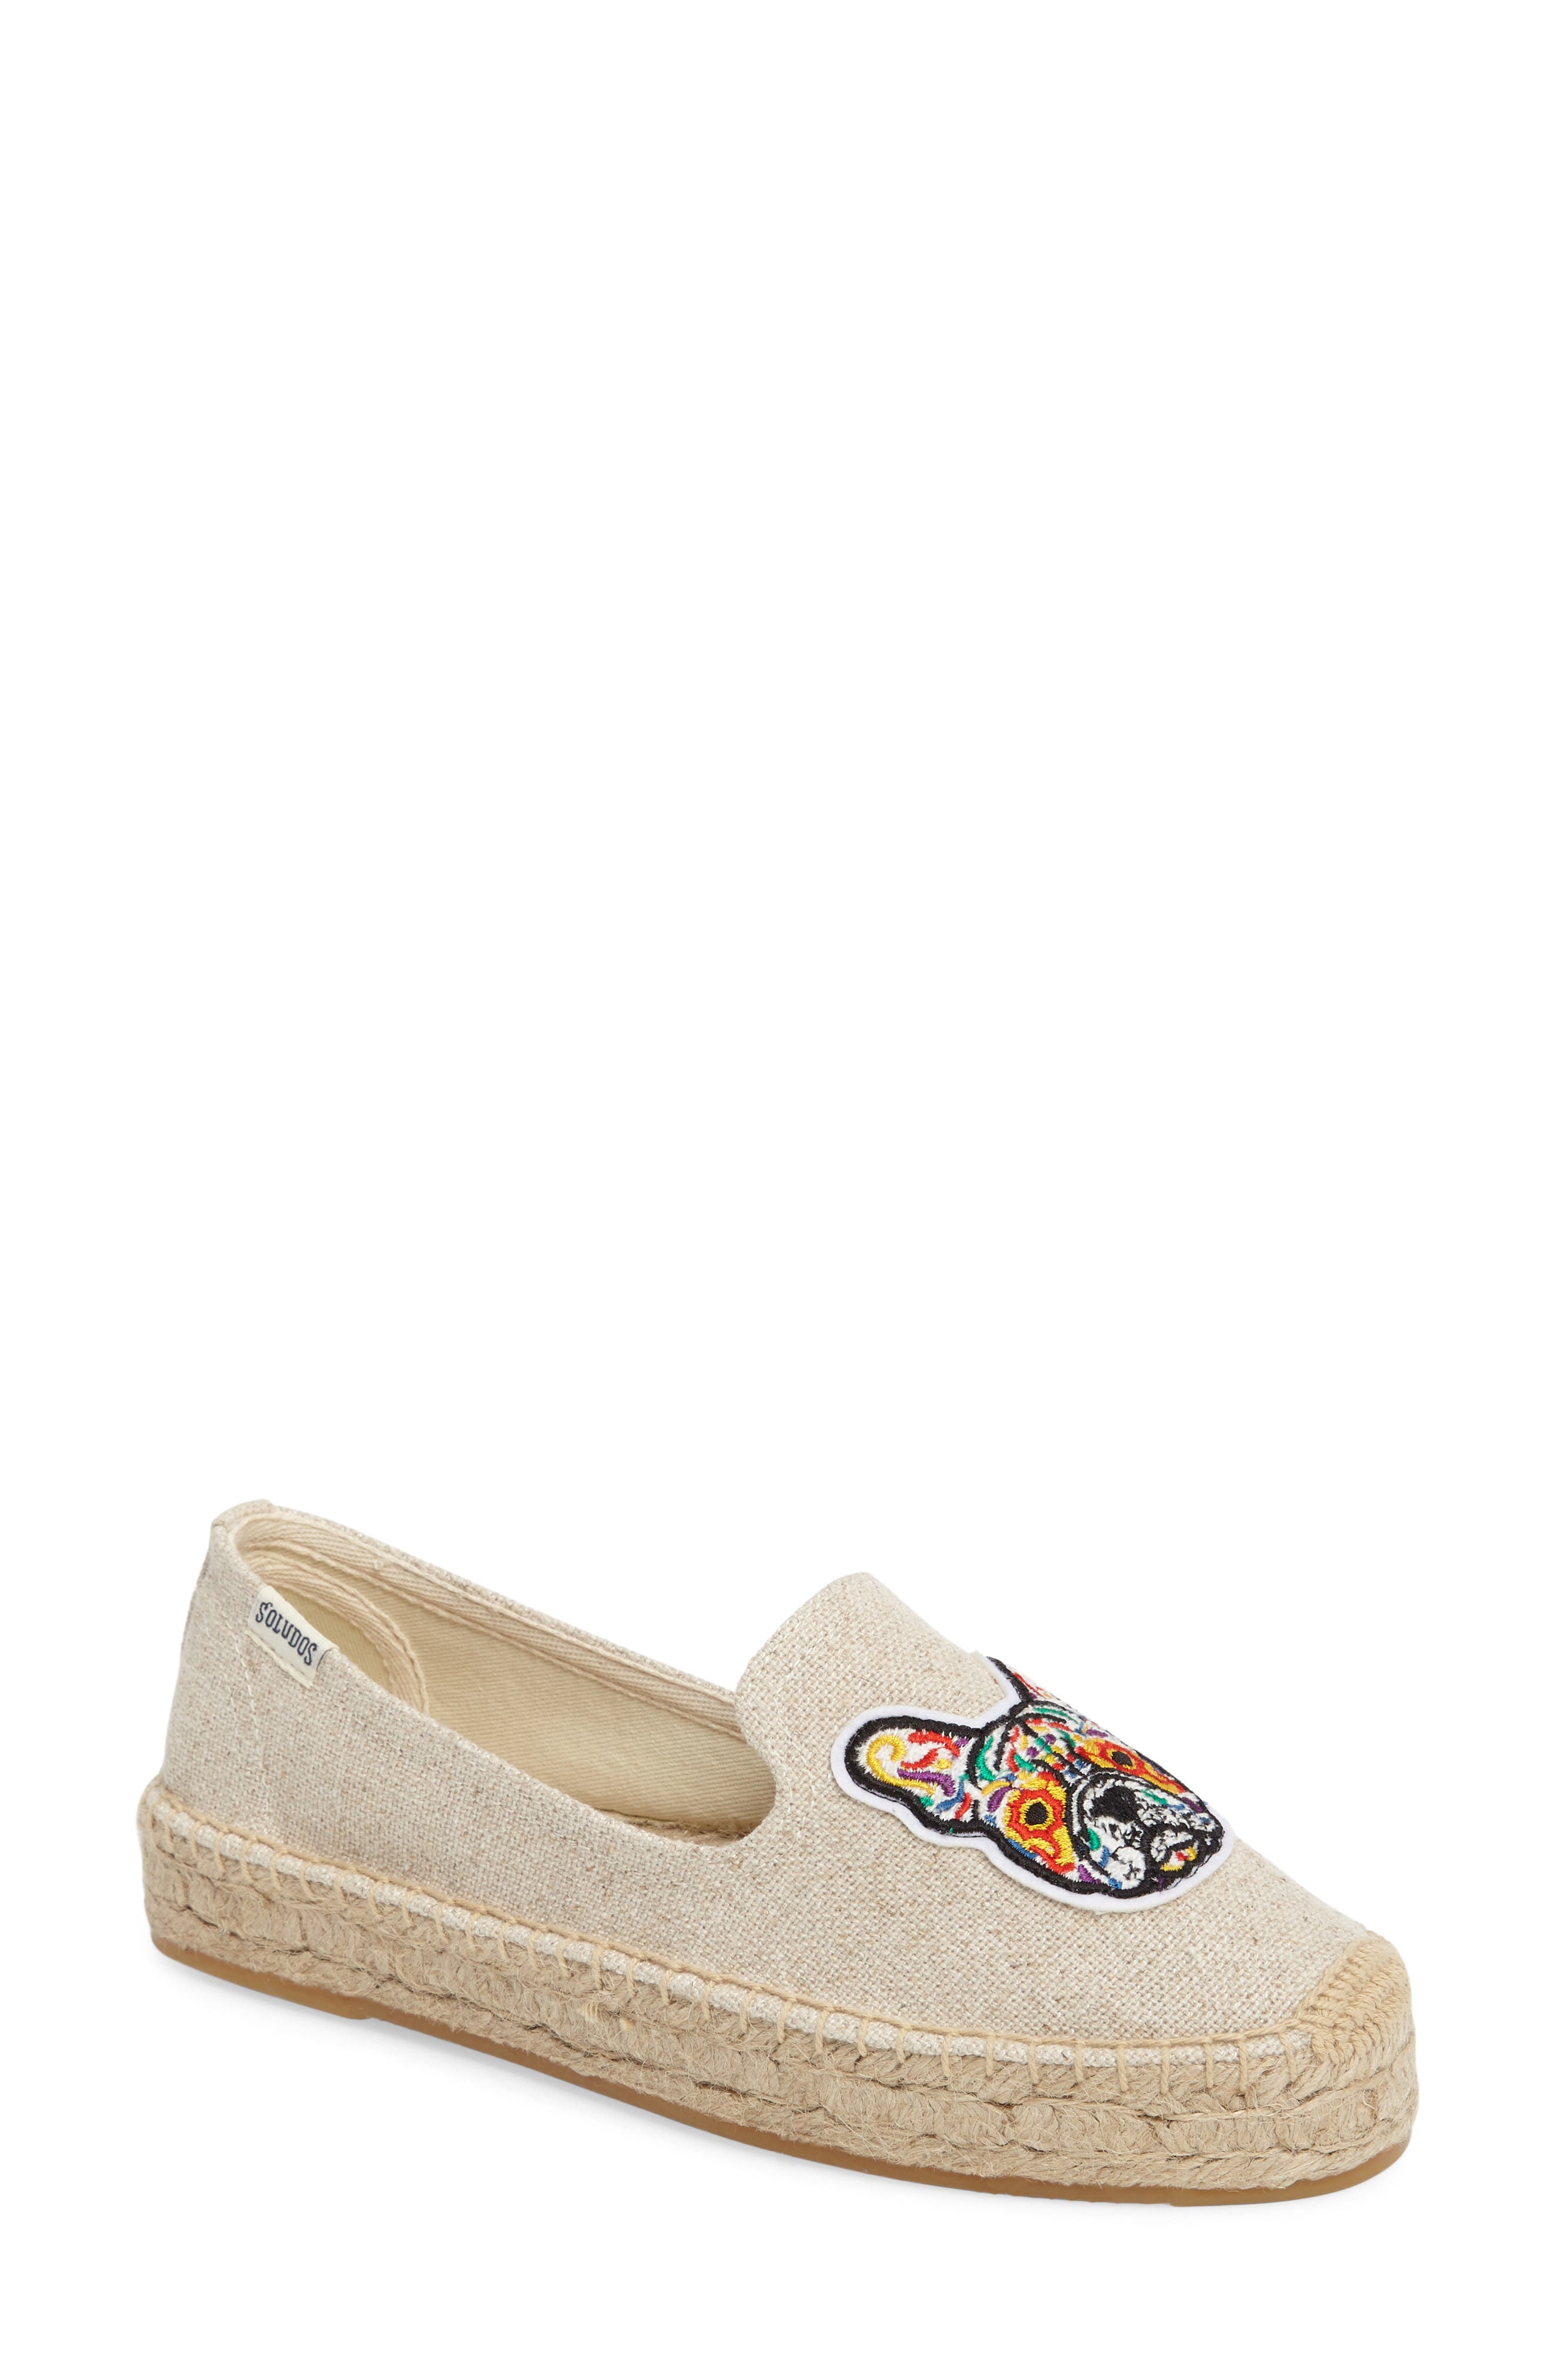 Soludos Frenchie Espadrille Loafer (Women)